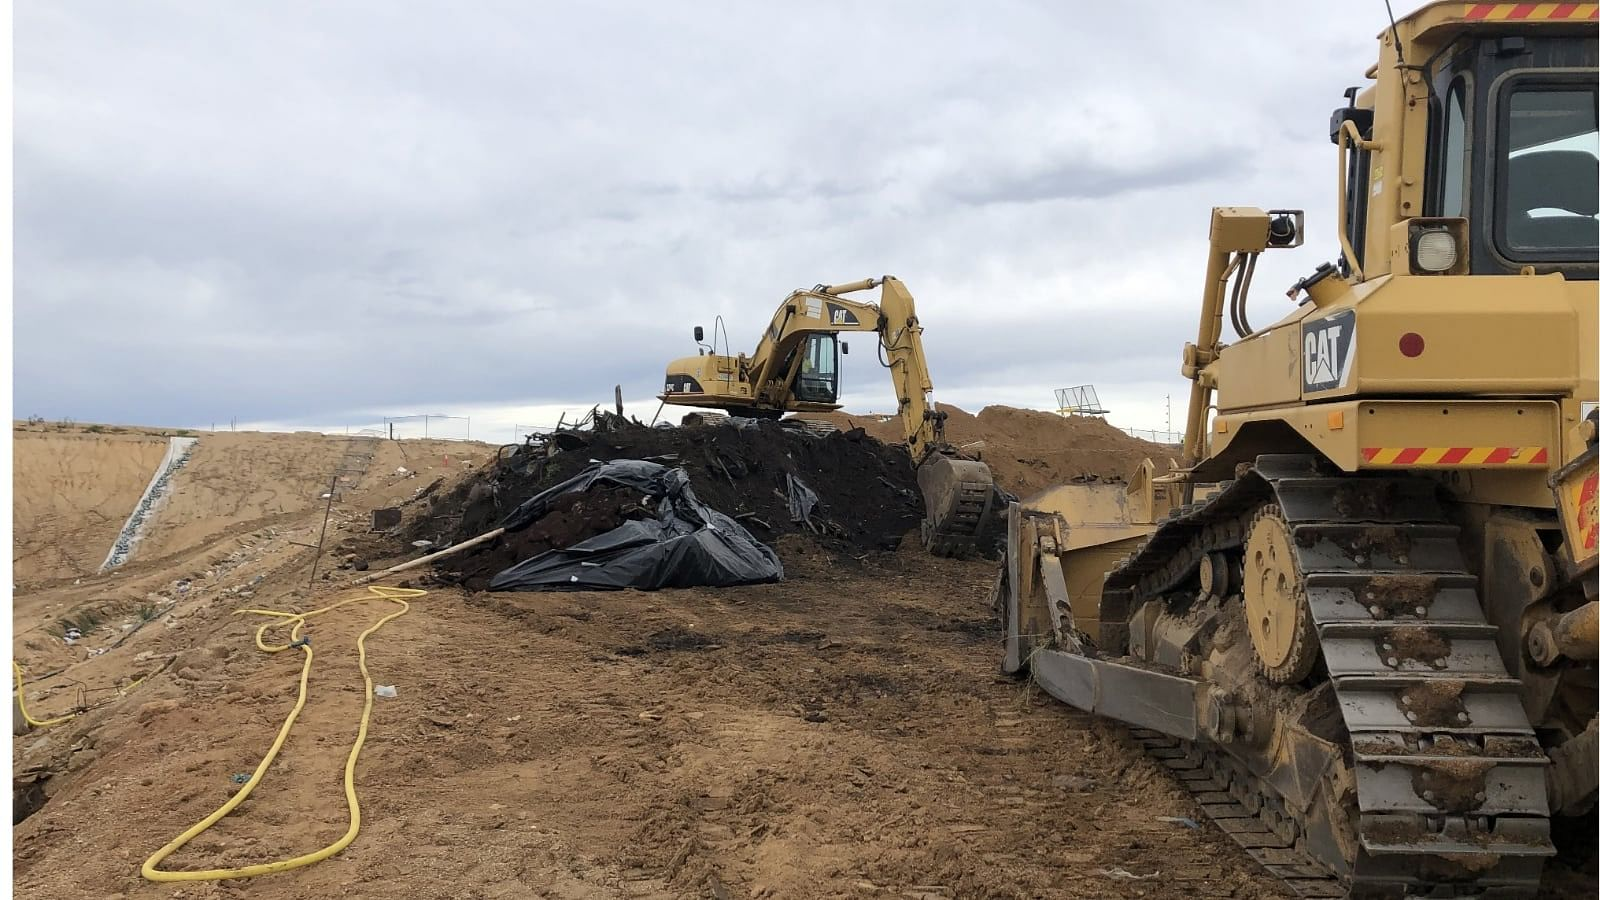 Fire-affected material ready for landfilling at the Central Waste Facility.